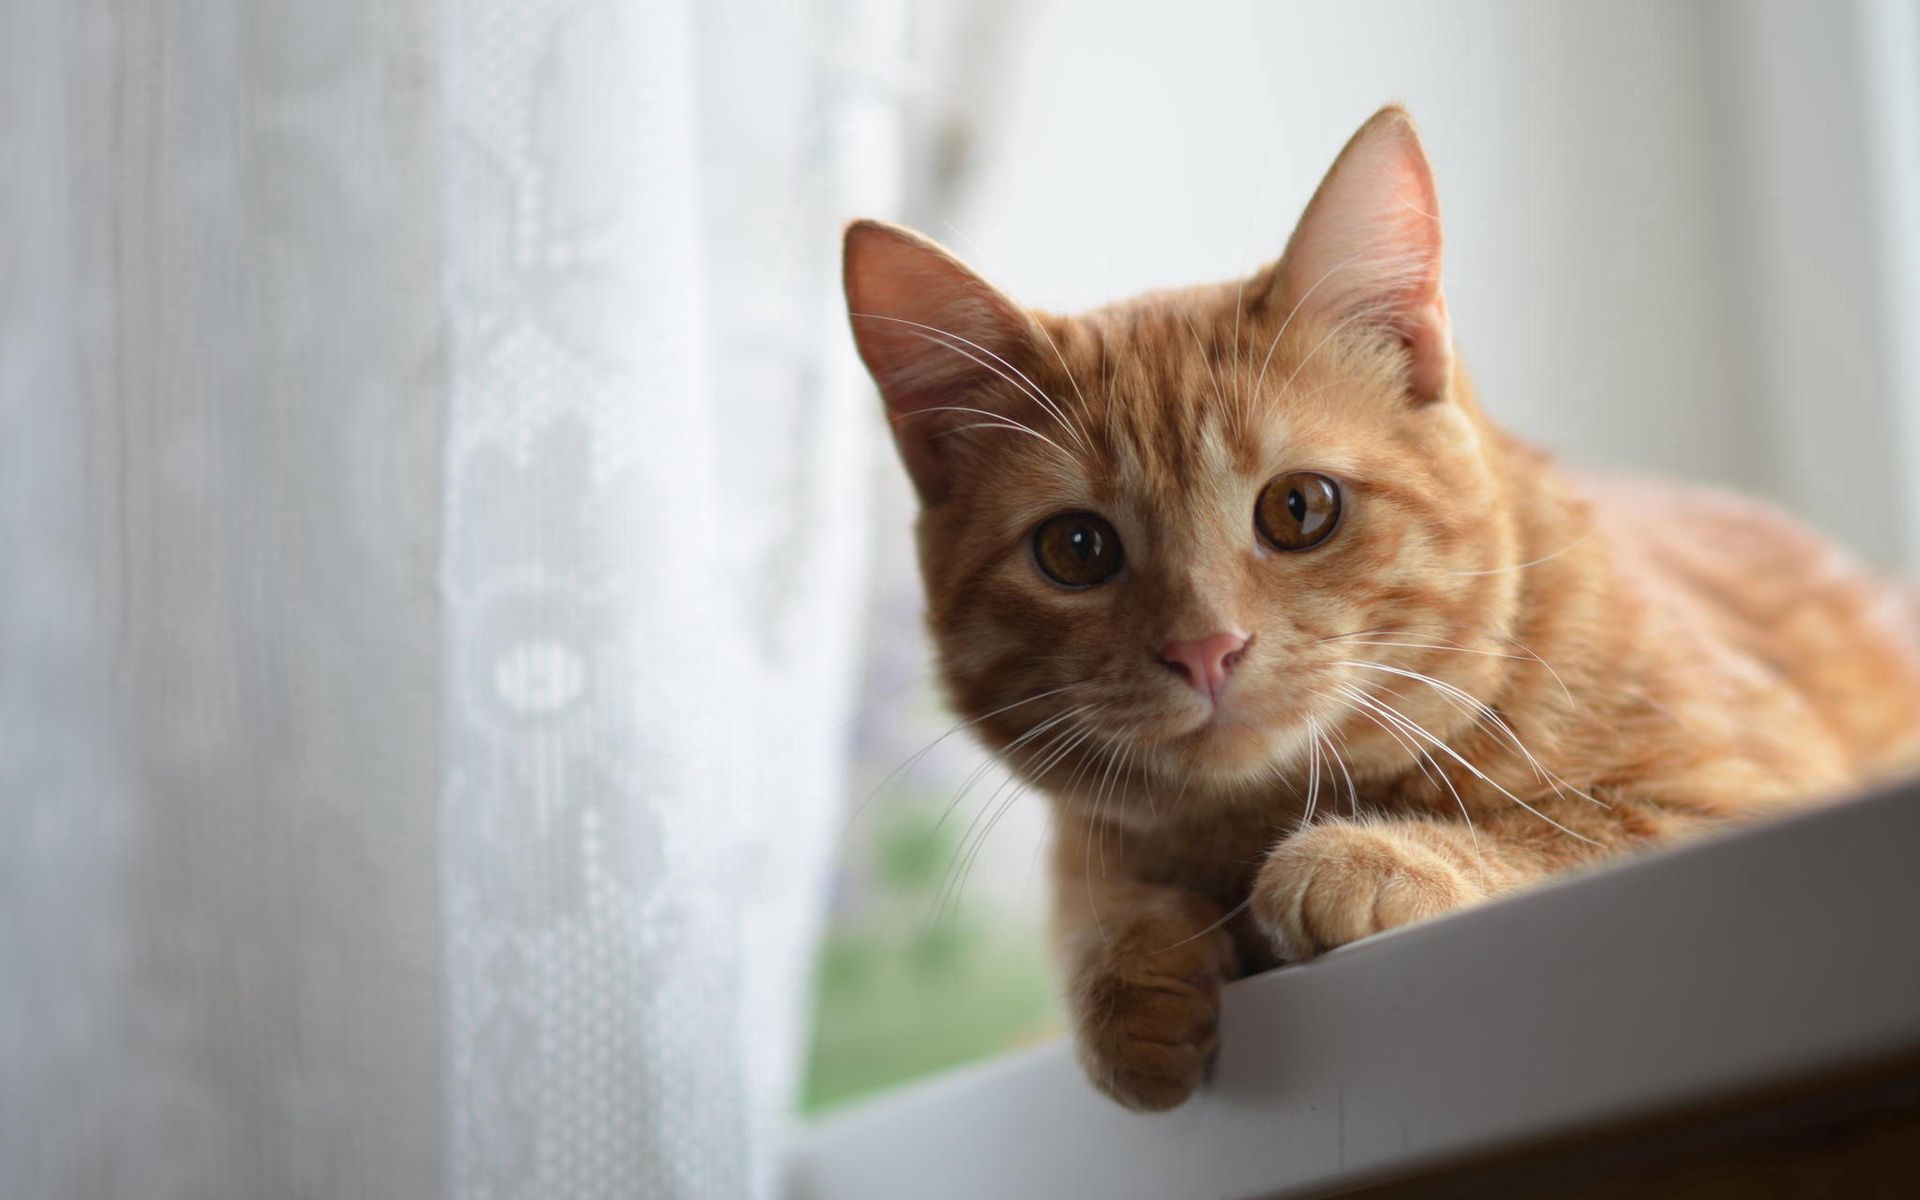 84845 download wallpaper Animals, Cat, Muzzle, Sight, Opinion, Redhead screensavers and pictures for free